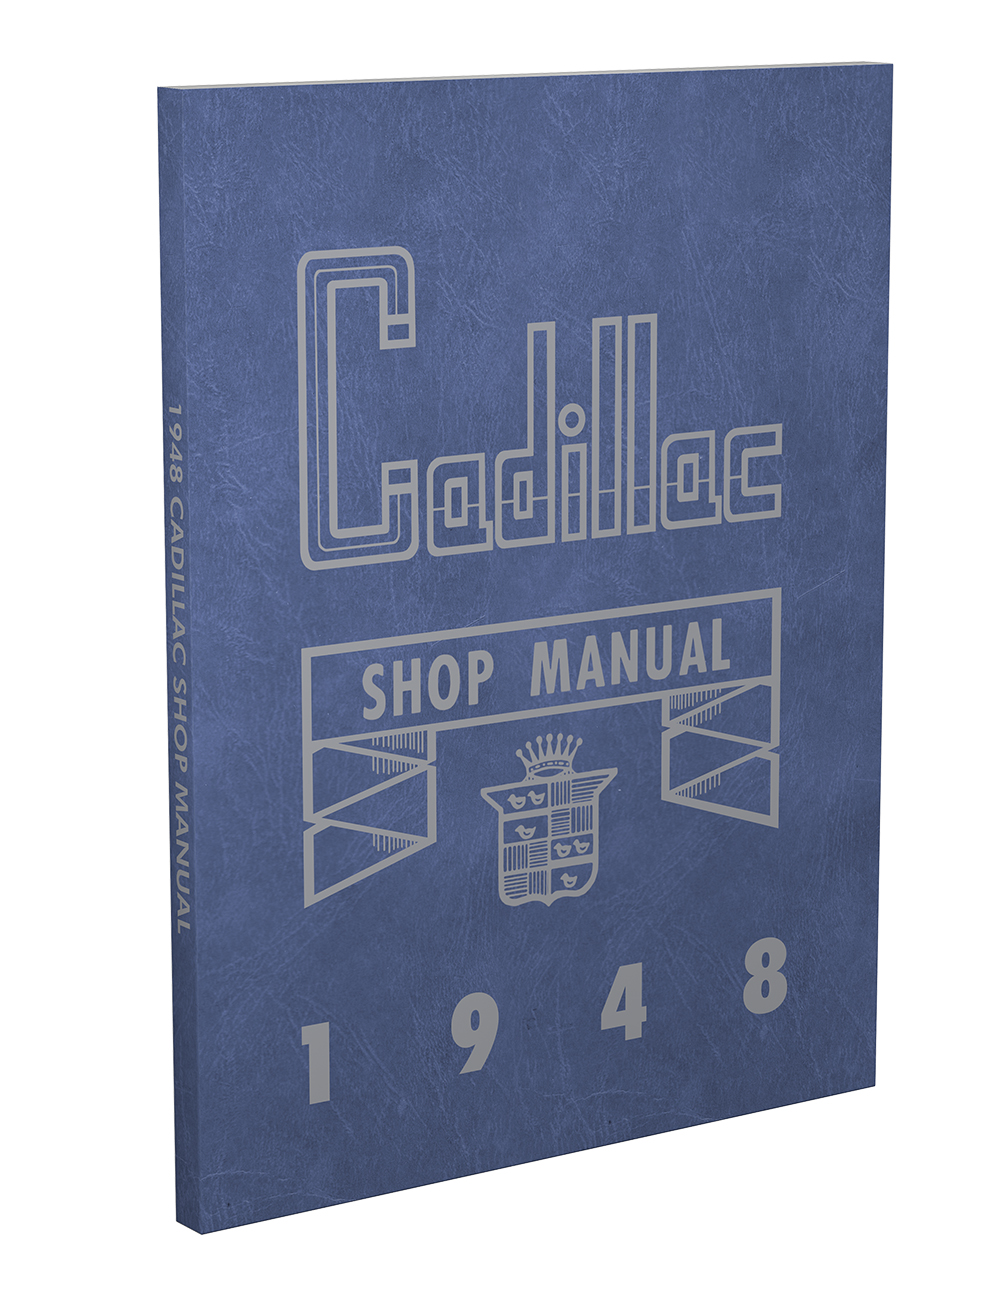 1948 Cadillac Shop Manual Reprint for all models